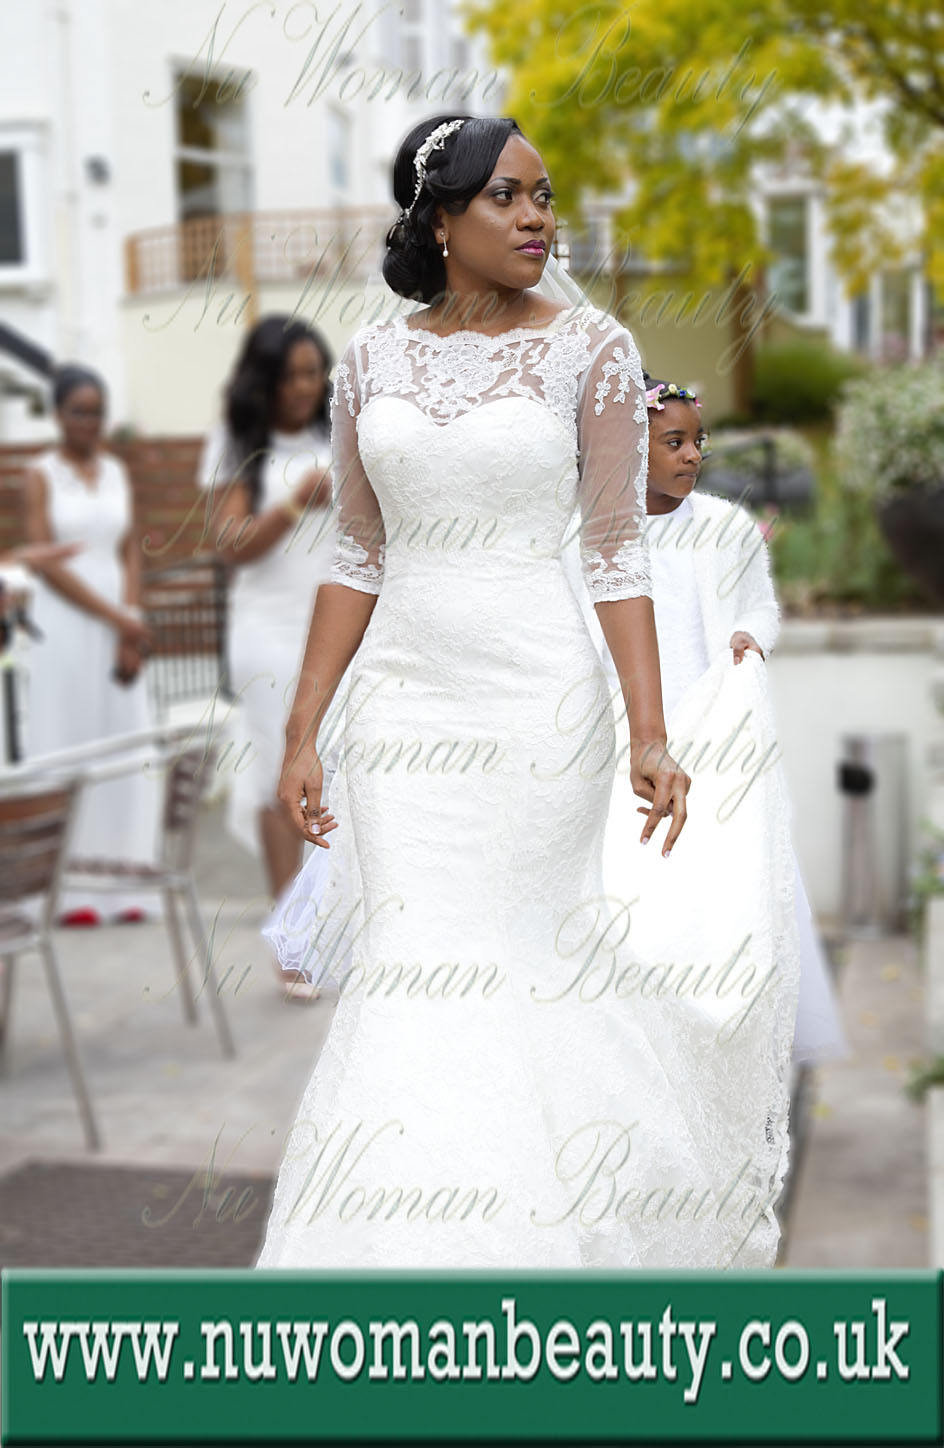 Mobile Bridal Afro Hair & Makeup Artist for Black Skin